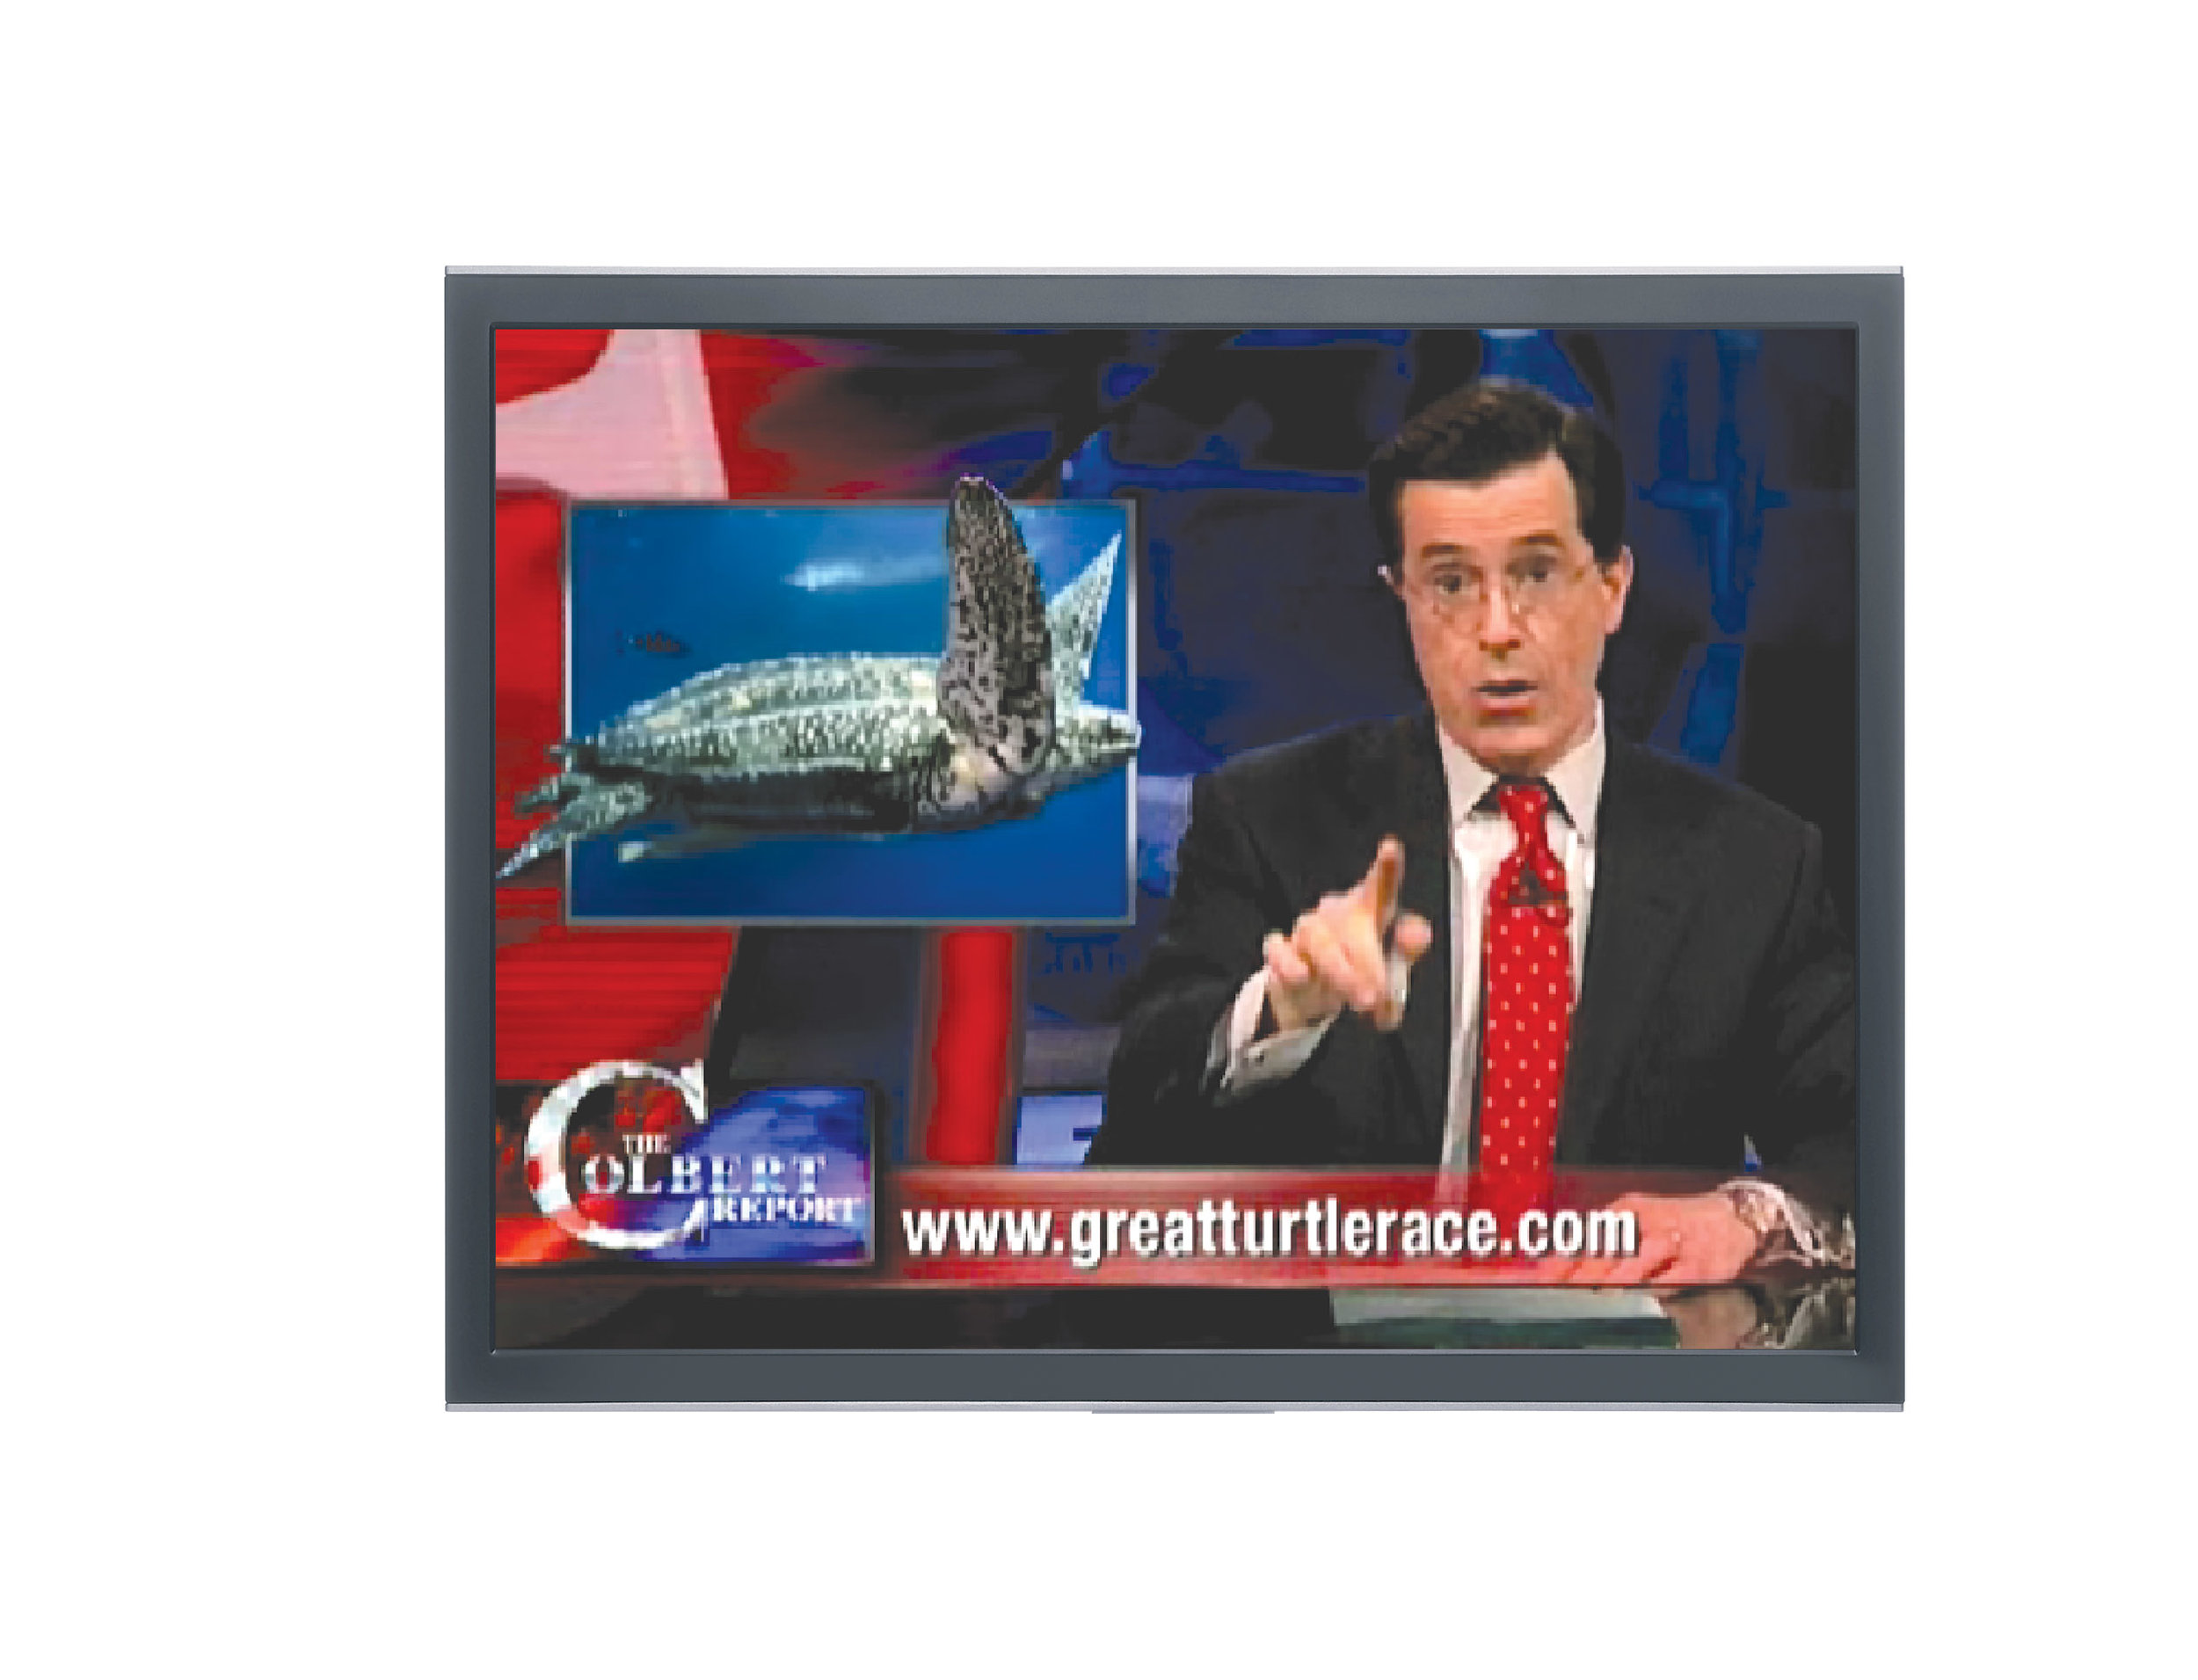 "Each time Stephen Colbert included the Great turtle race in his comedy sketches on ""The Colbert Report,"" website hits at www.greatturtlerace.com skyrocketed."